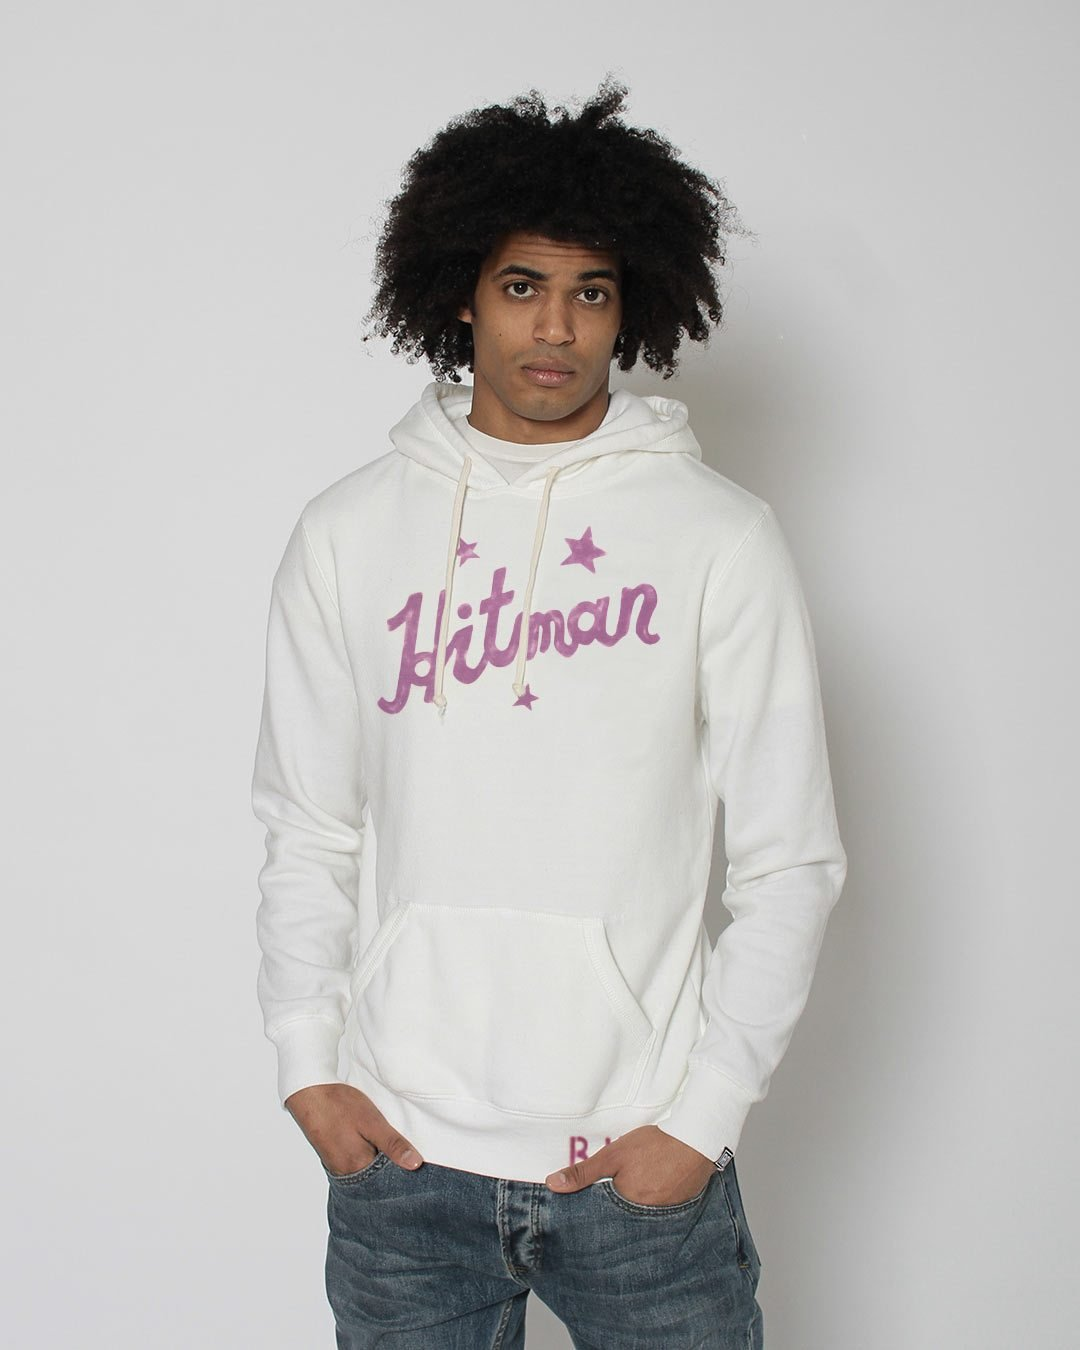 Bret Hart Hitman Pullover Hoody - Roots of Inc dba Roots of Fight